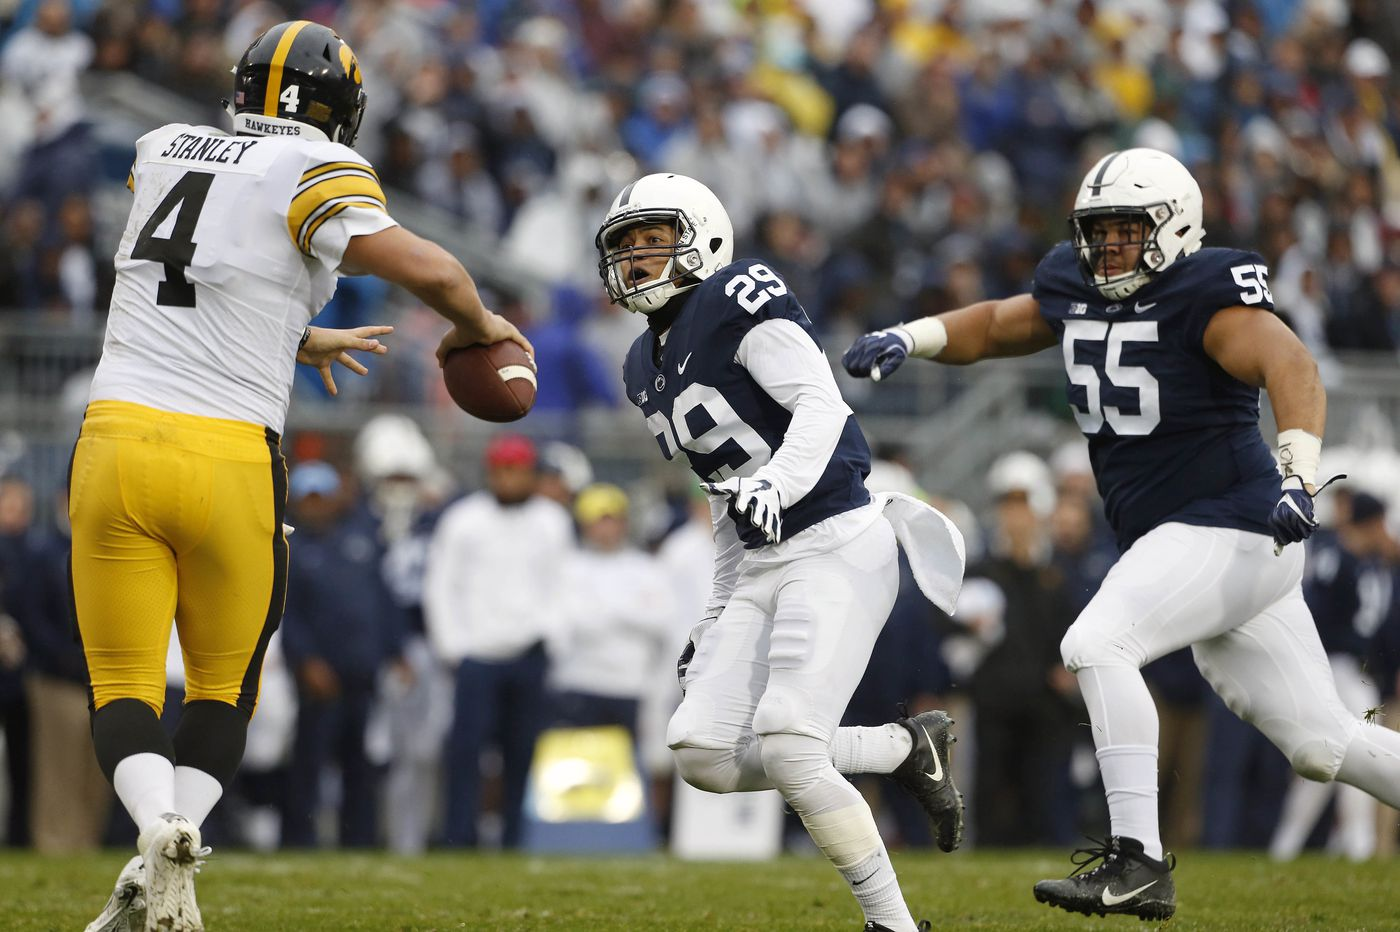 Penn State's John Reid showing he's back from his injury